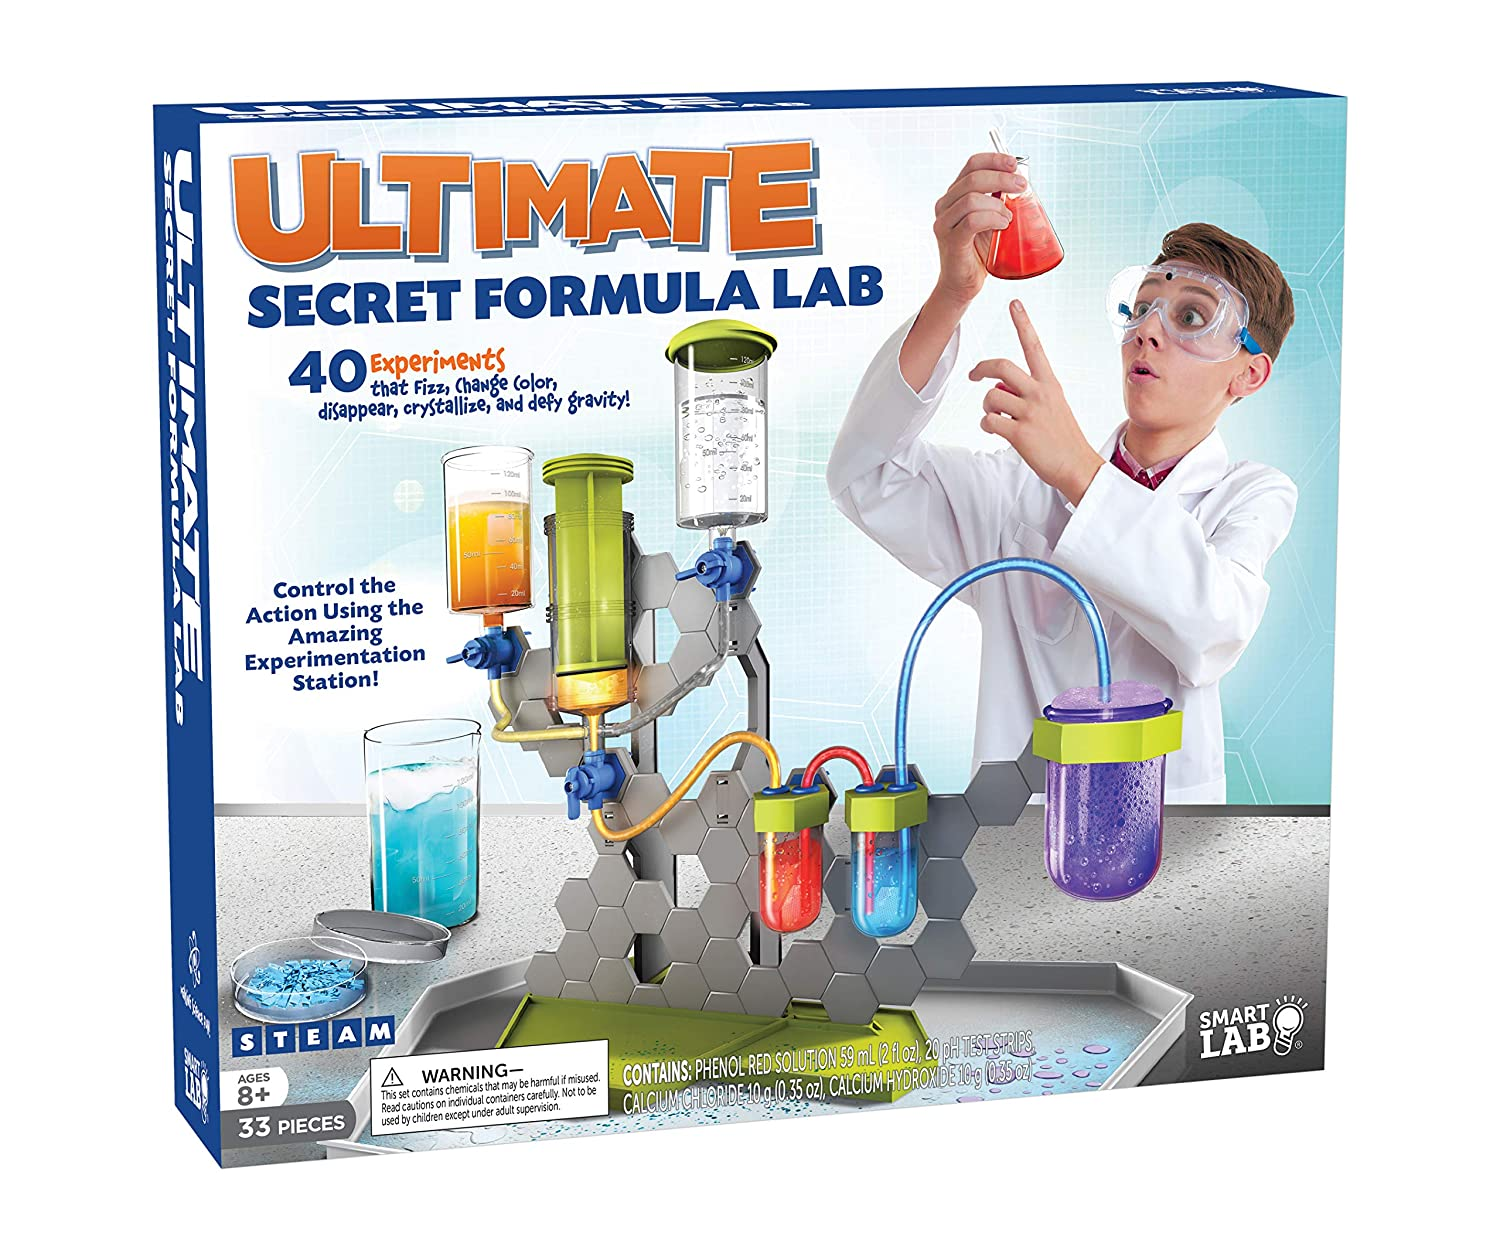 Top 13 Best Chemistry Set for Kids Reviews in 2020 5